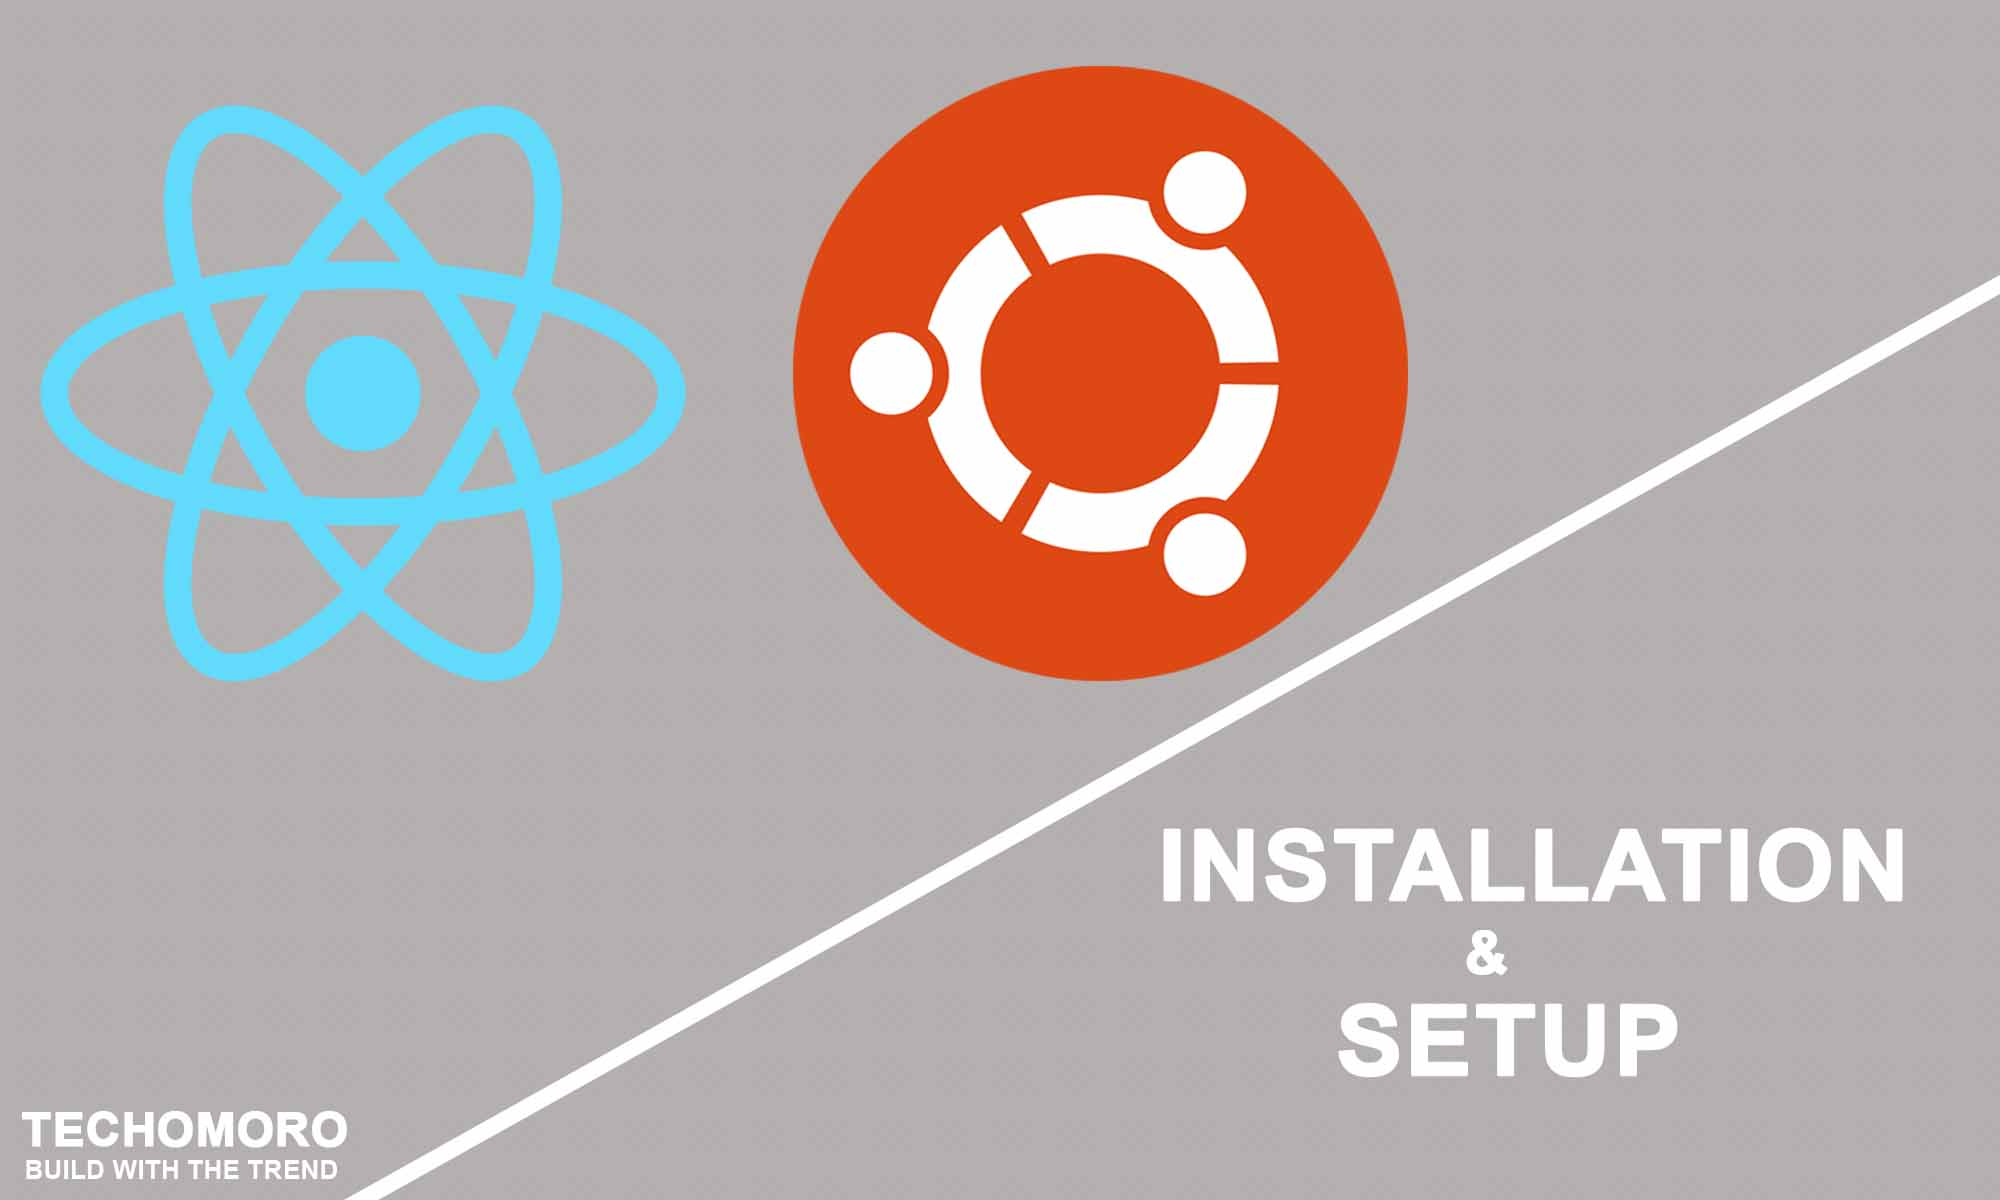 How to Install and Setup React Native on Ubuntu 18.04.1 LTS (Bionic Beaver)